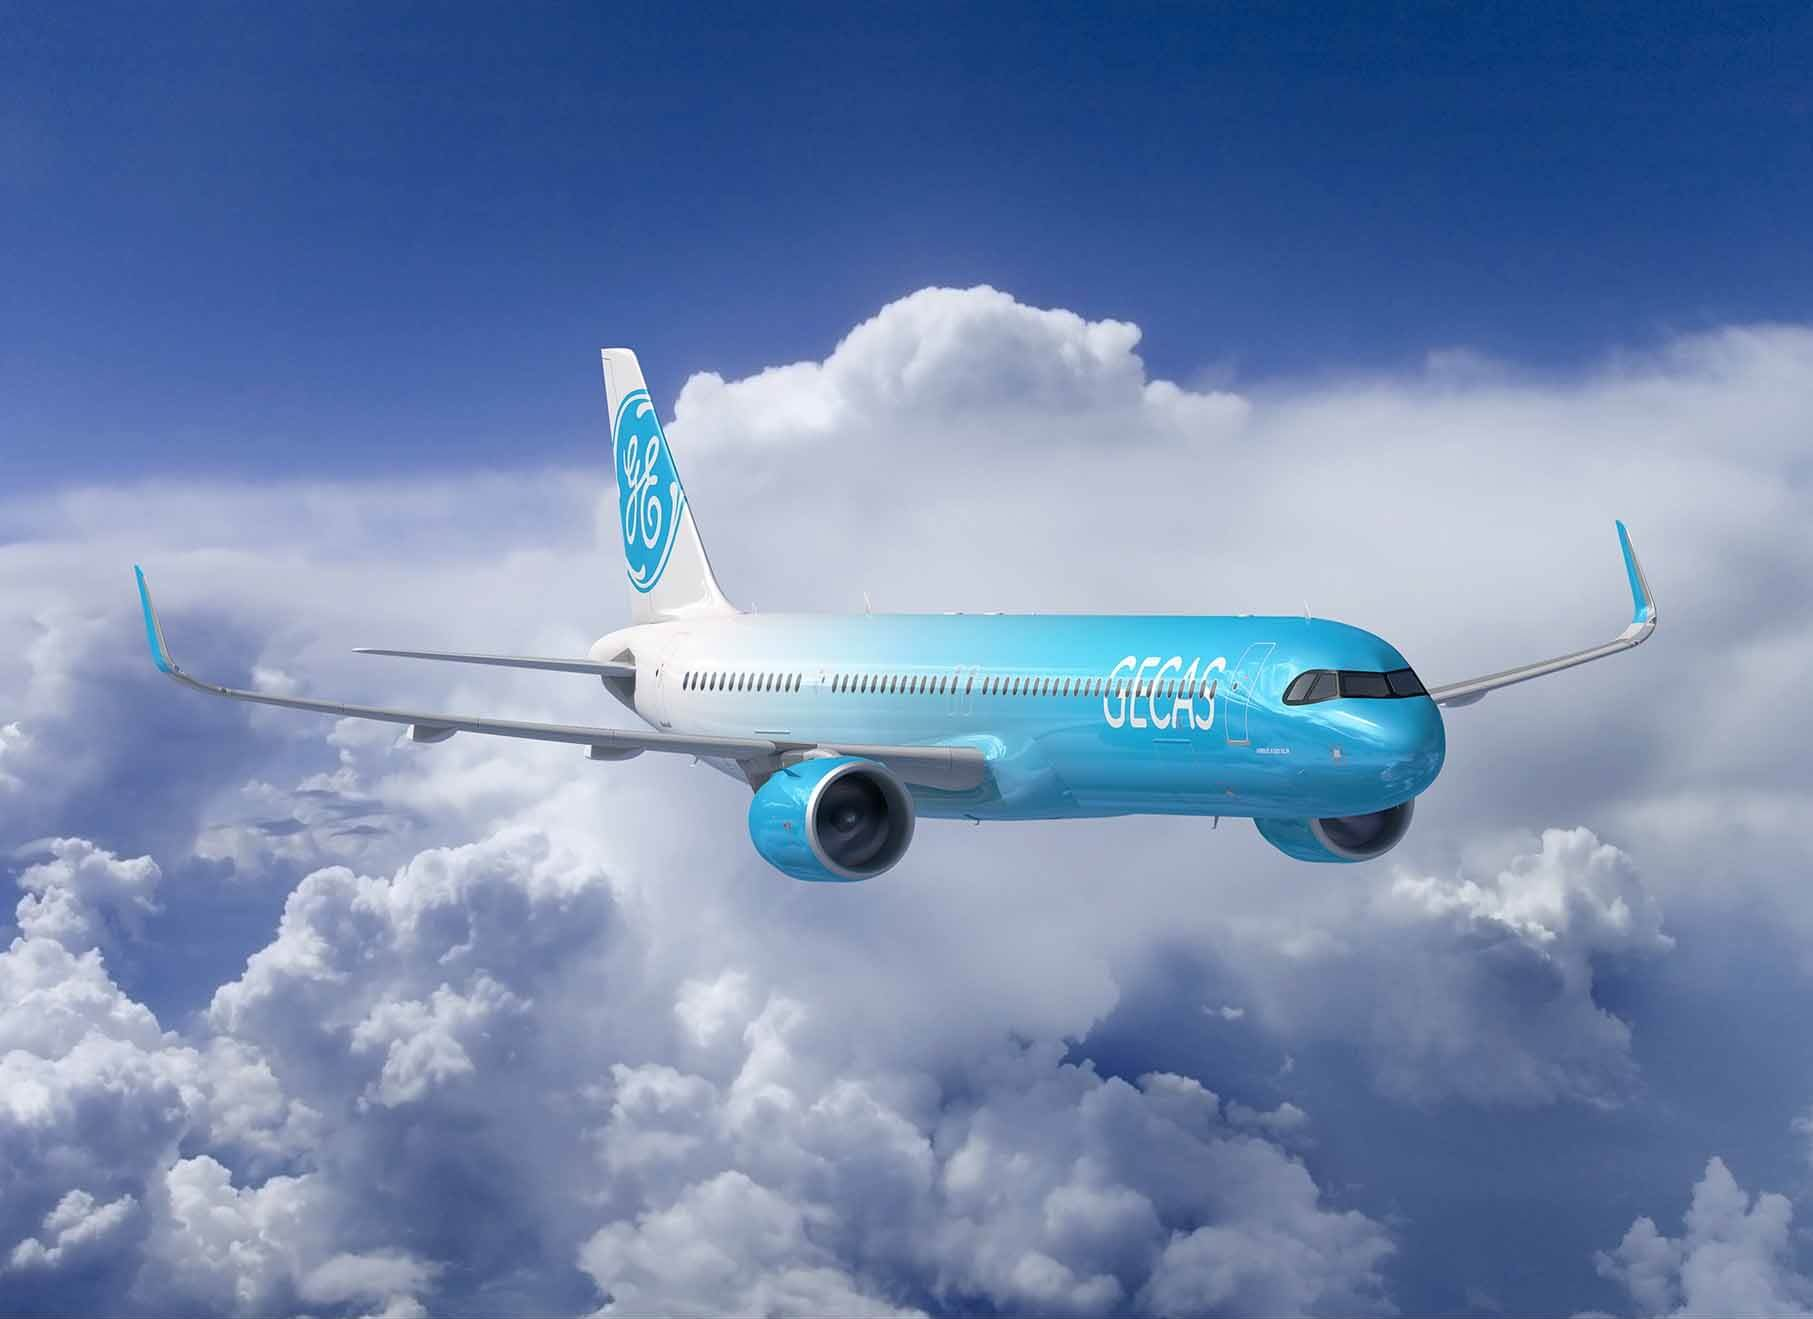 GECAS orders 32 Airbus aircraft at Dubai Airshow 2019